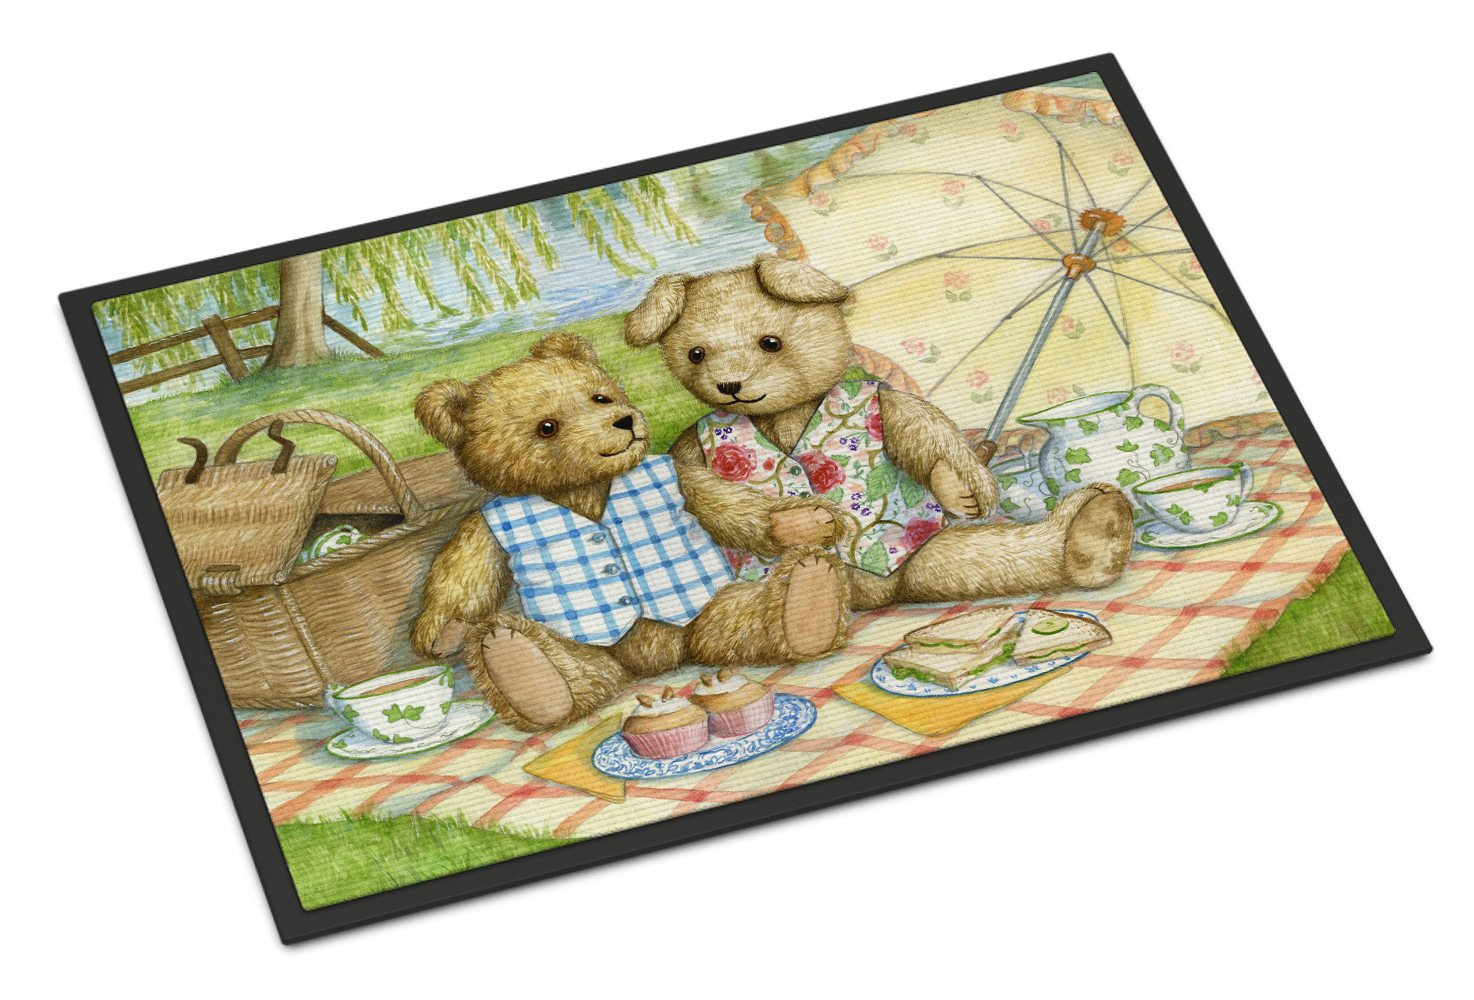 Summertime Teddy Bears Picnic Indoor or Outdoor Mat 18x27 CDCO0308MAT - the-store.com